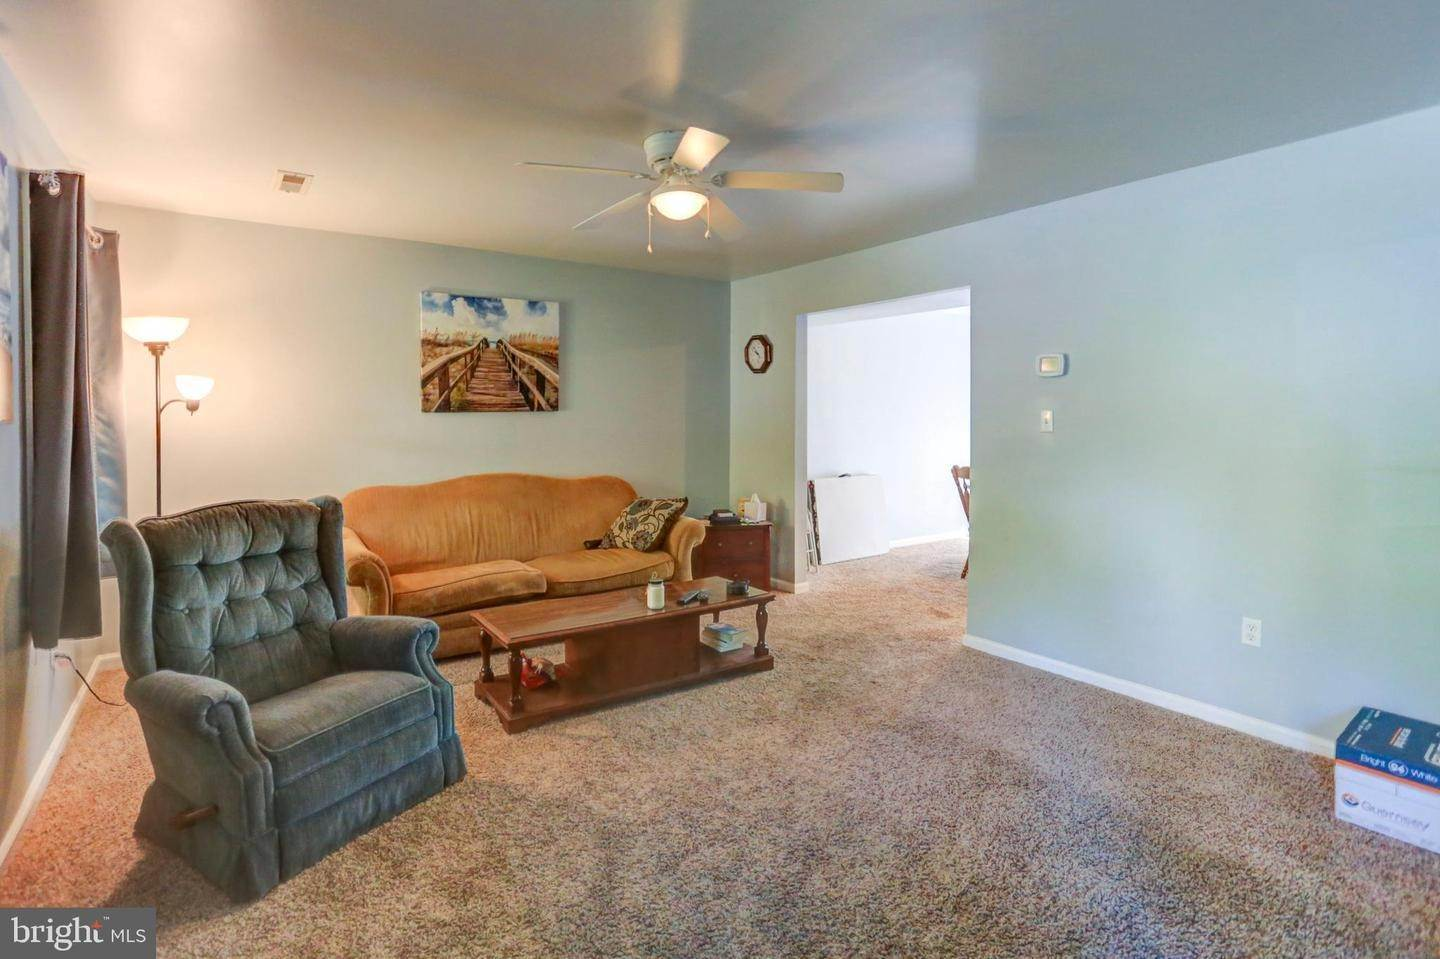 3. Residential for Sale at 6 AMBER Court Millersville, Pennsylvania 17551 United States